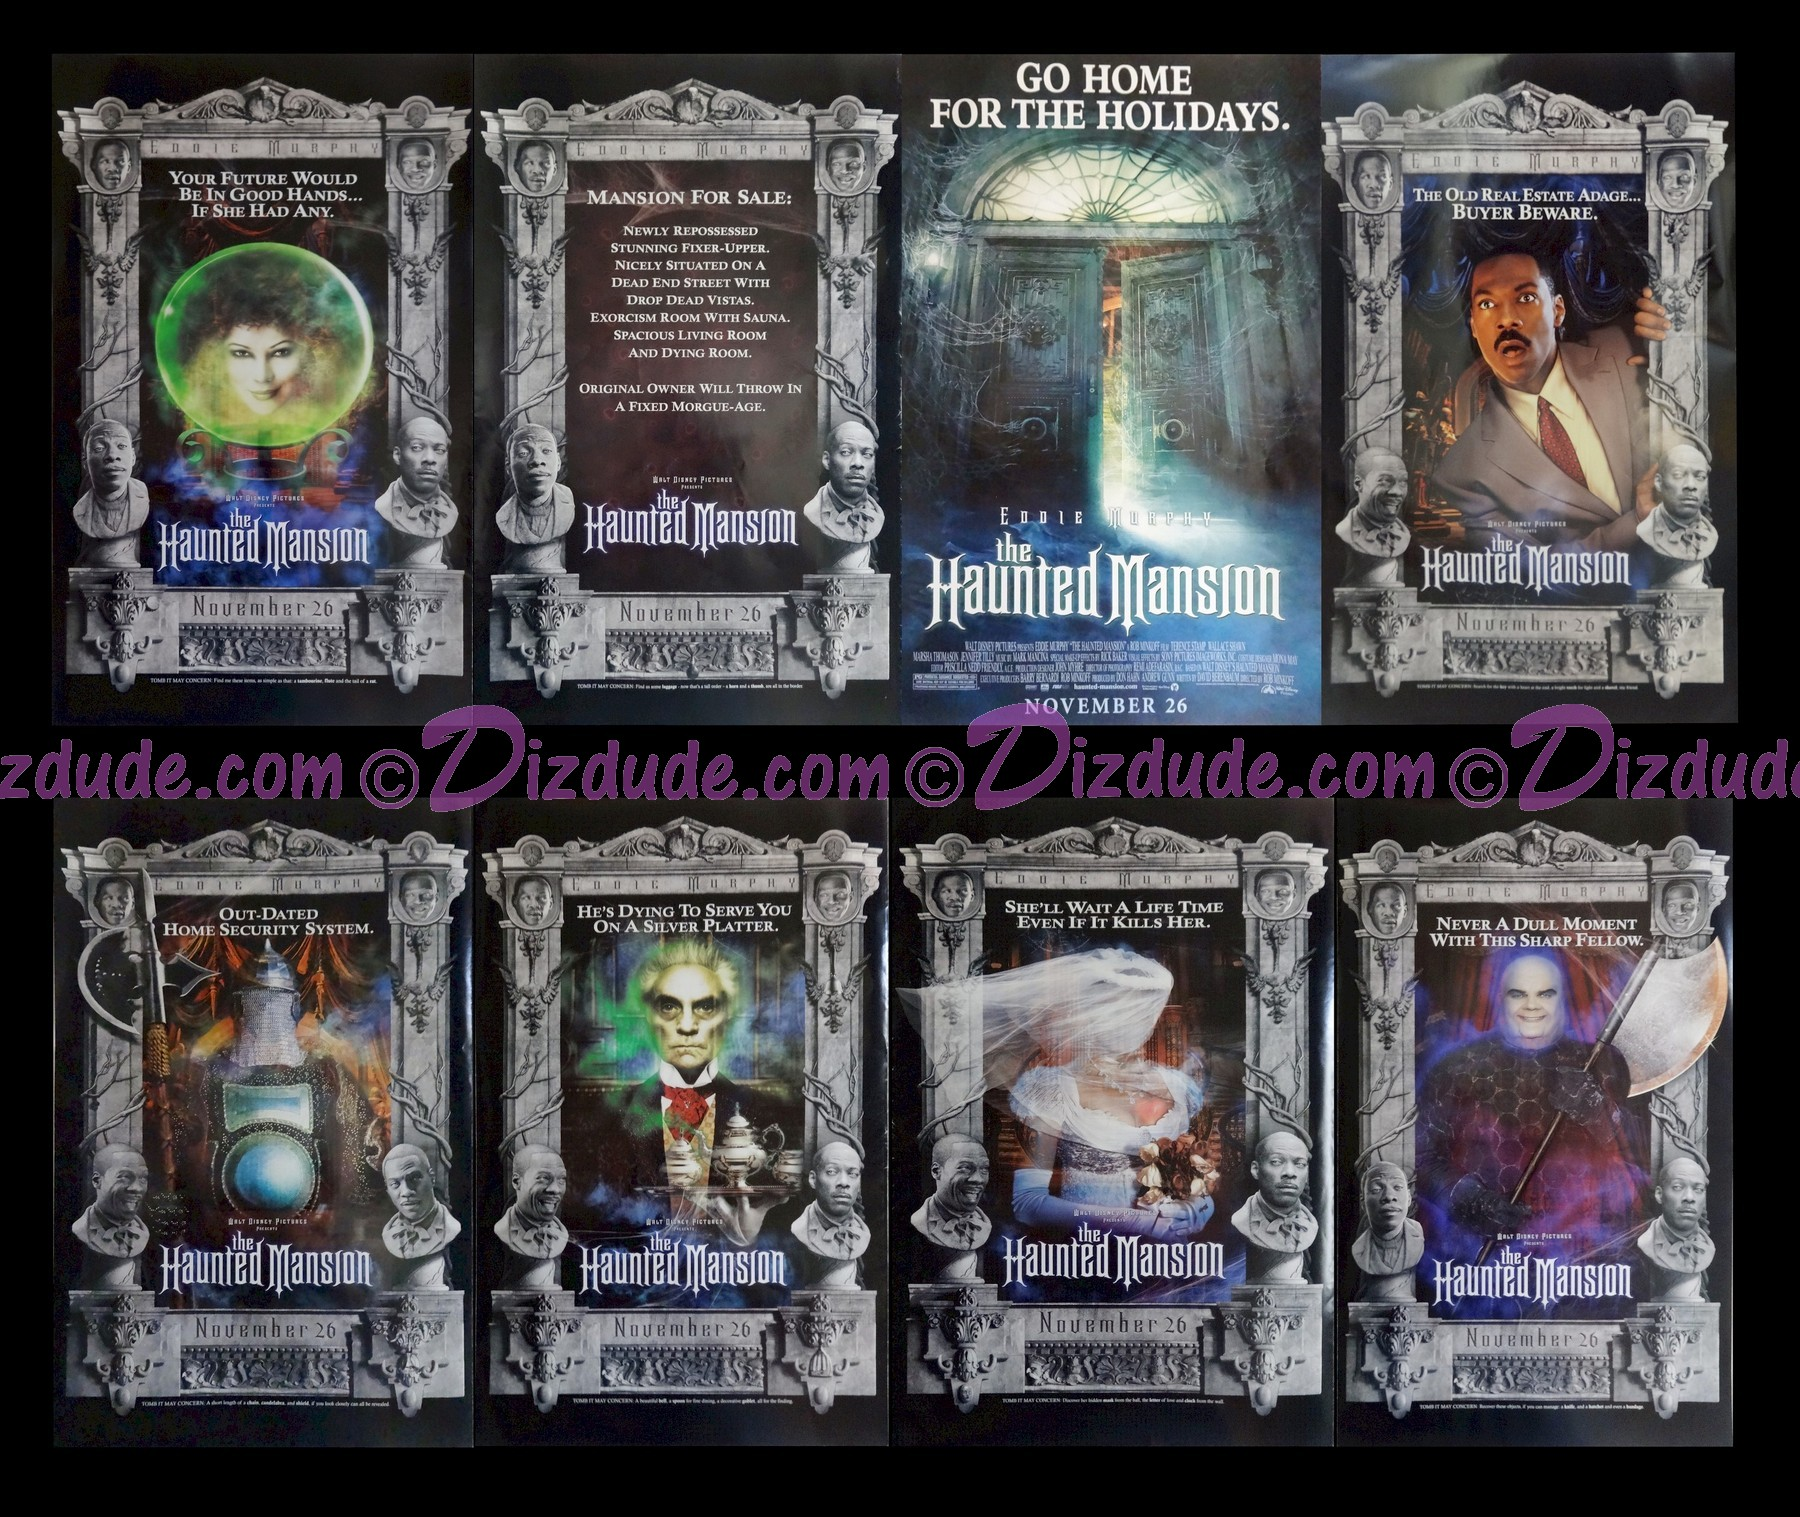 dizdudecom disney movie poster quotthe haunted mansion